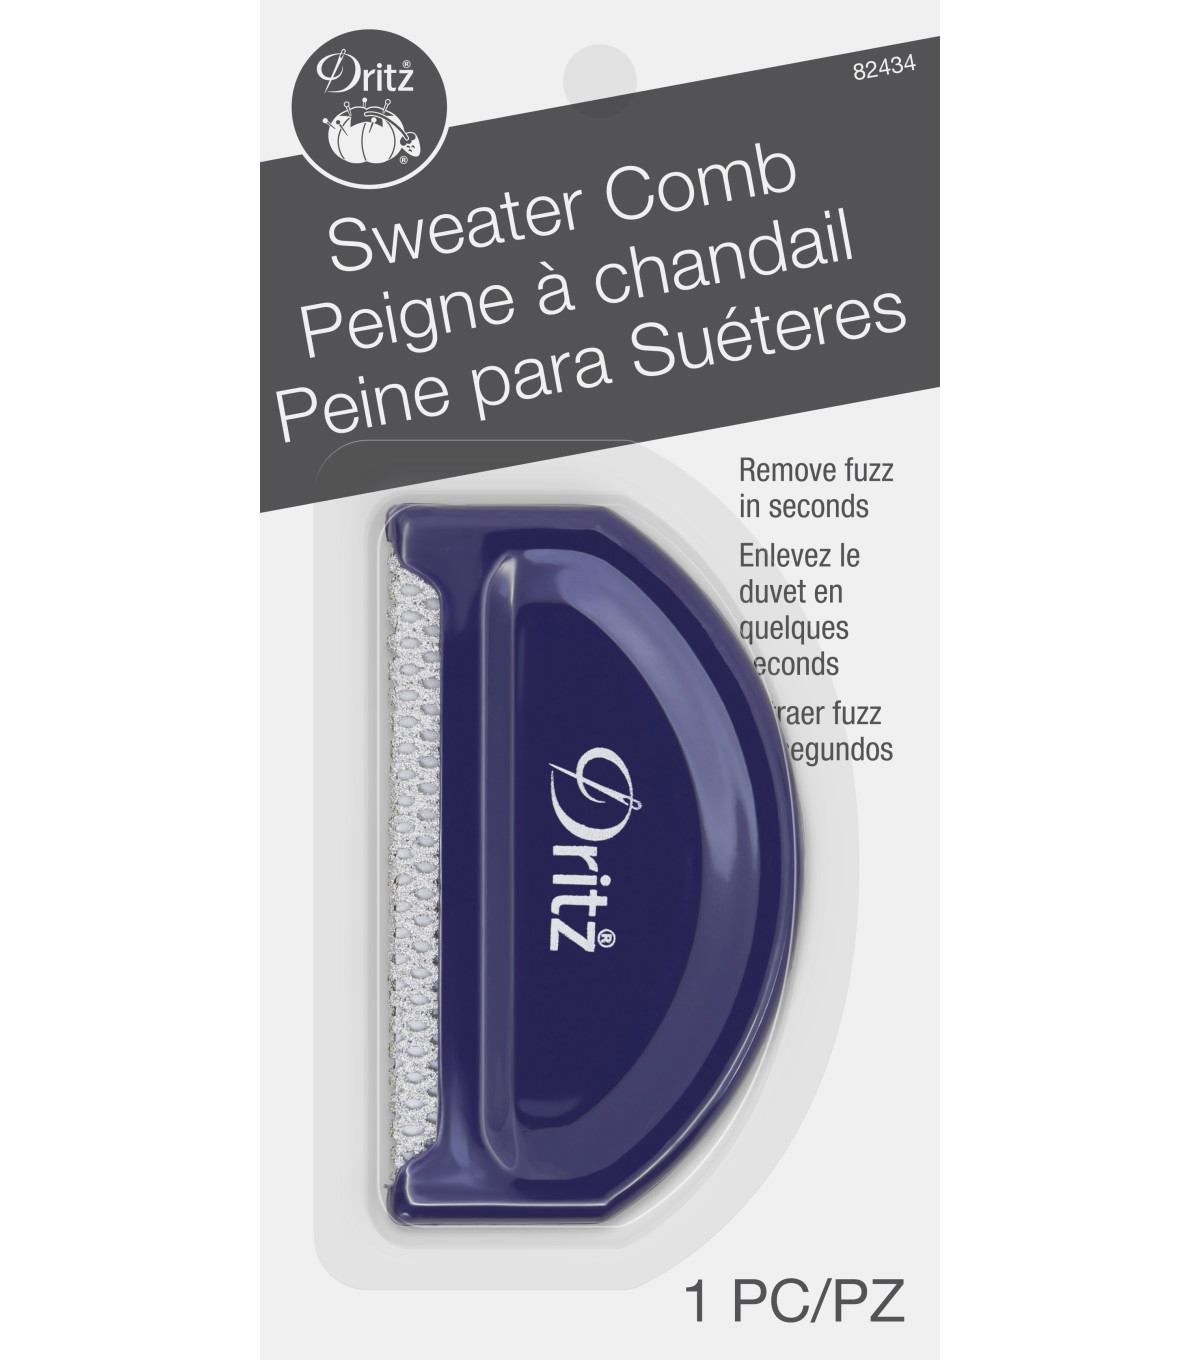 Dritz Sweater Comb